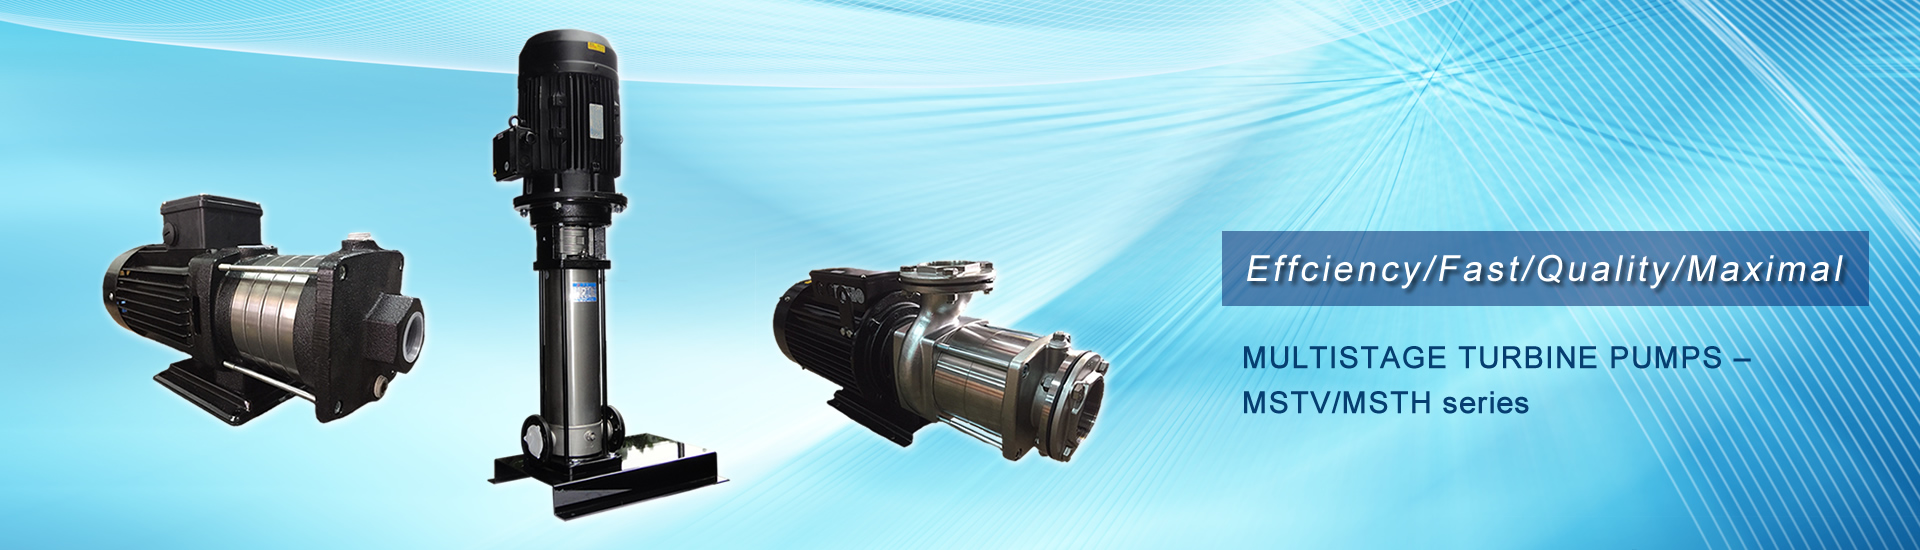 MULTISTAGE TURBINE PUMPS – MSTV/MSTH series